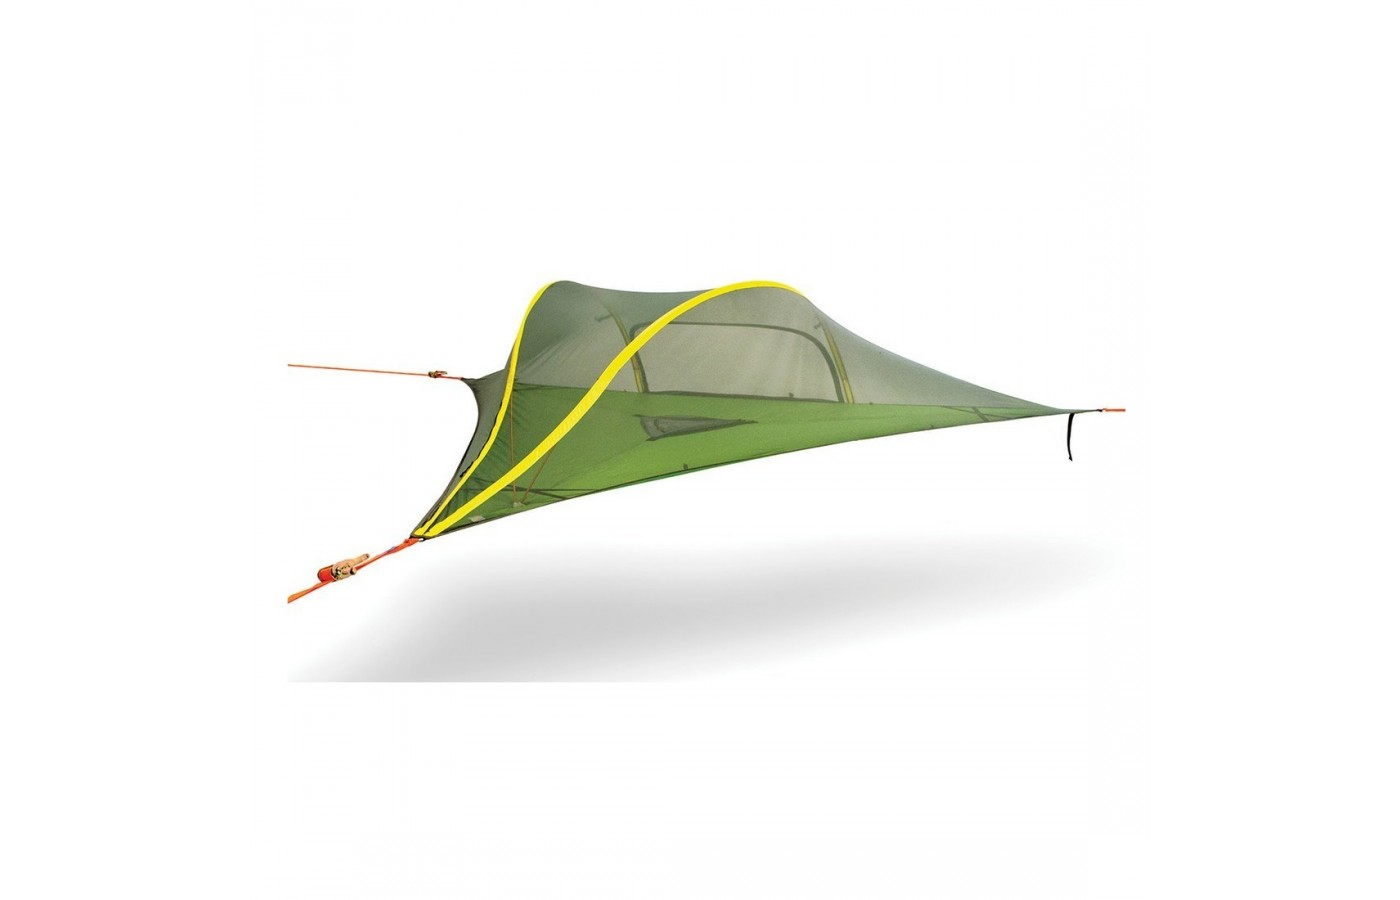 The Tentsile Stingray can be used on any terrain for easier camping abilities.